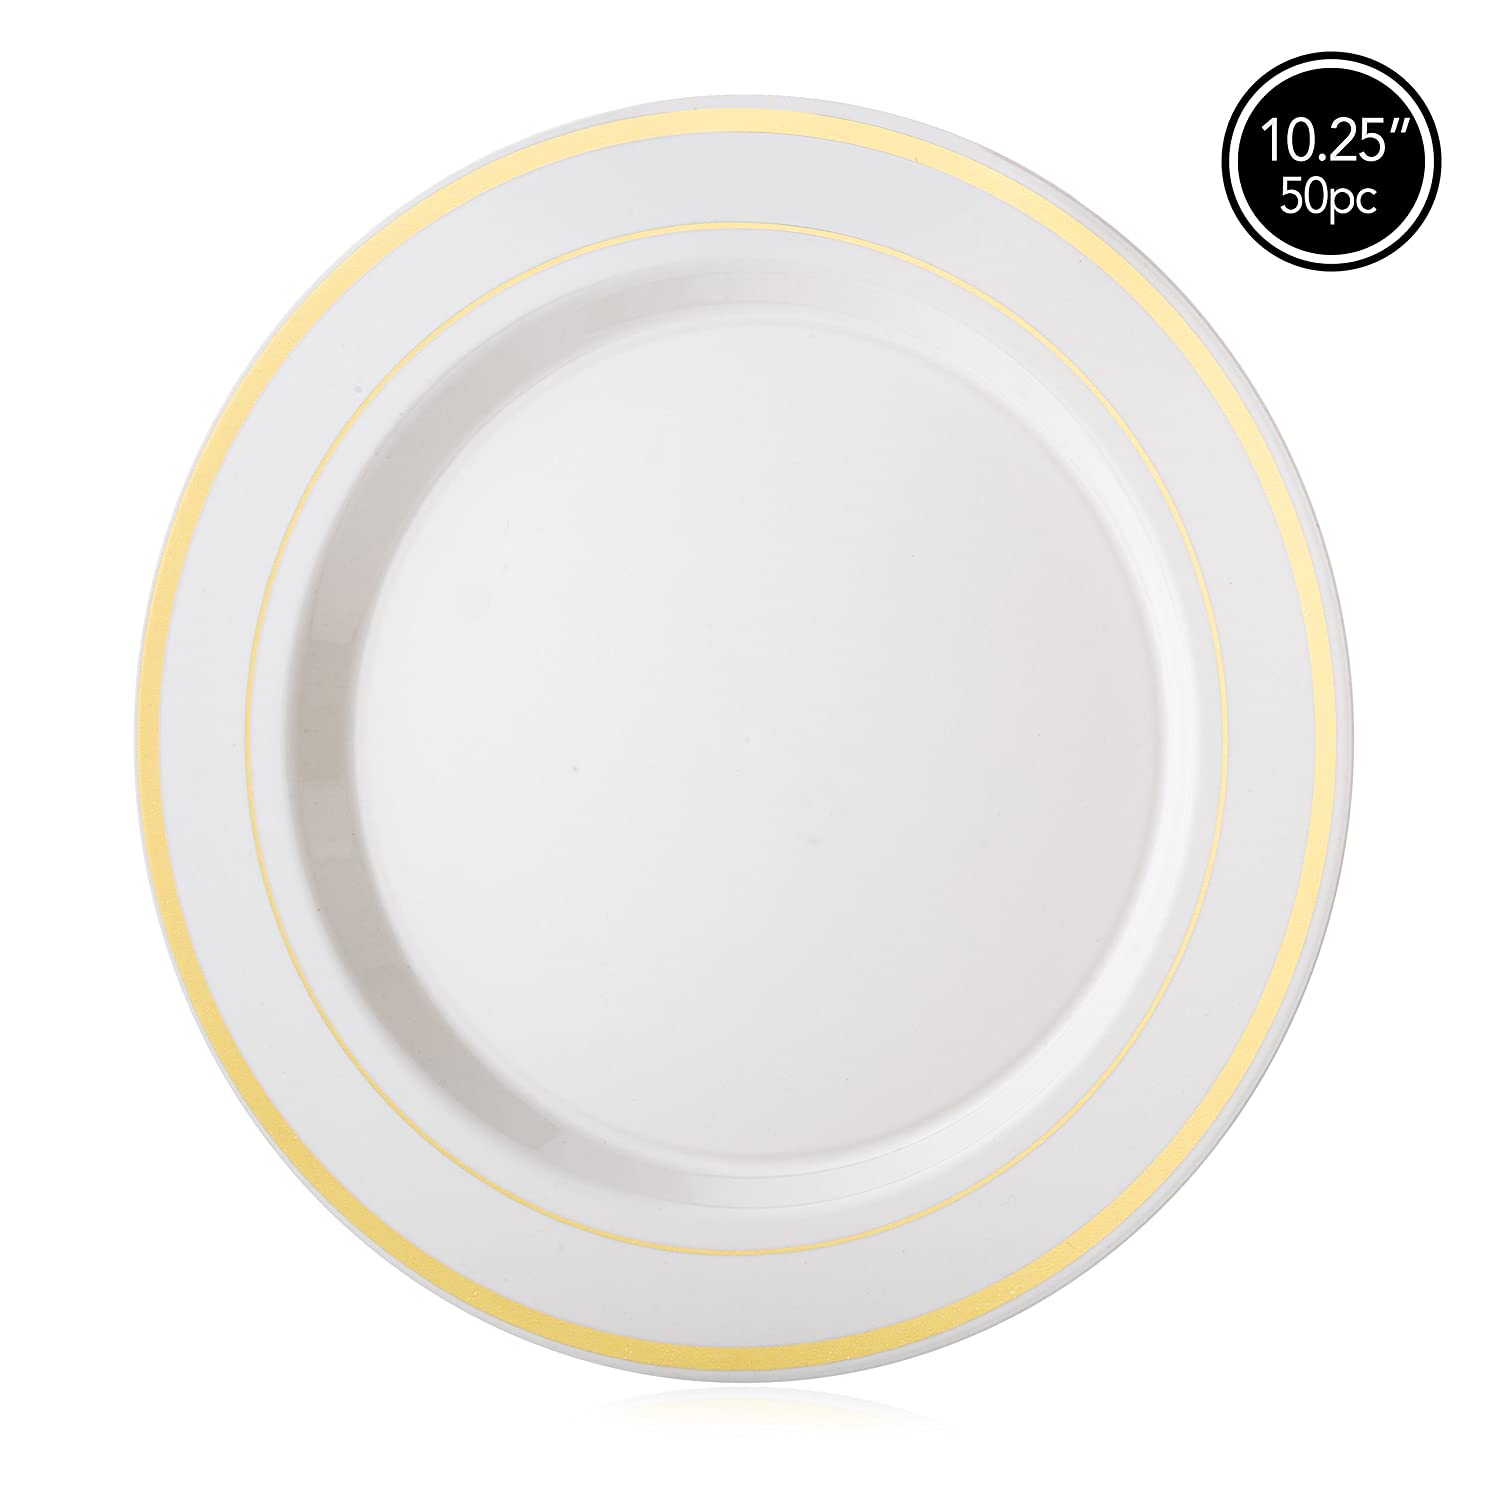 Amazon.com Elite Selection Pack of 50 Dinner Disposable Plastic Party Plates Ivory Cream Color With Gold Rim 10.25-Inch Kitchen \u0026 Dining  sc 1 st  Amazon.com & Amazon.com: Elite Selection Pack of 50 Dinner Disposable Plastic ...